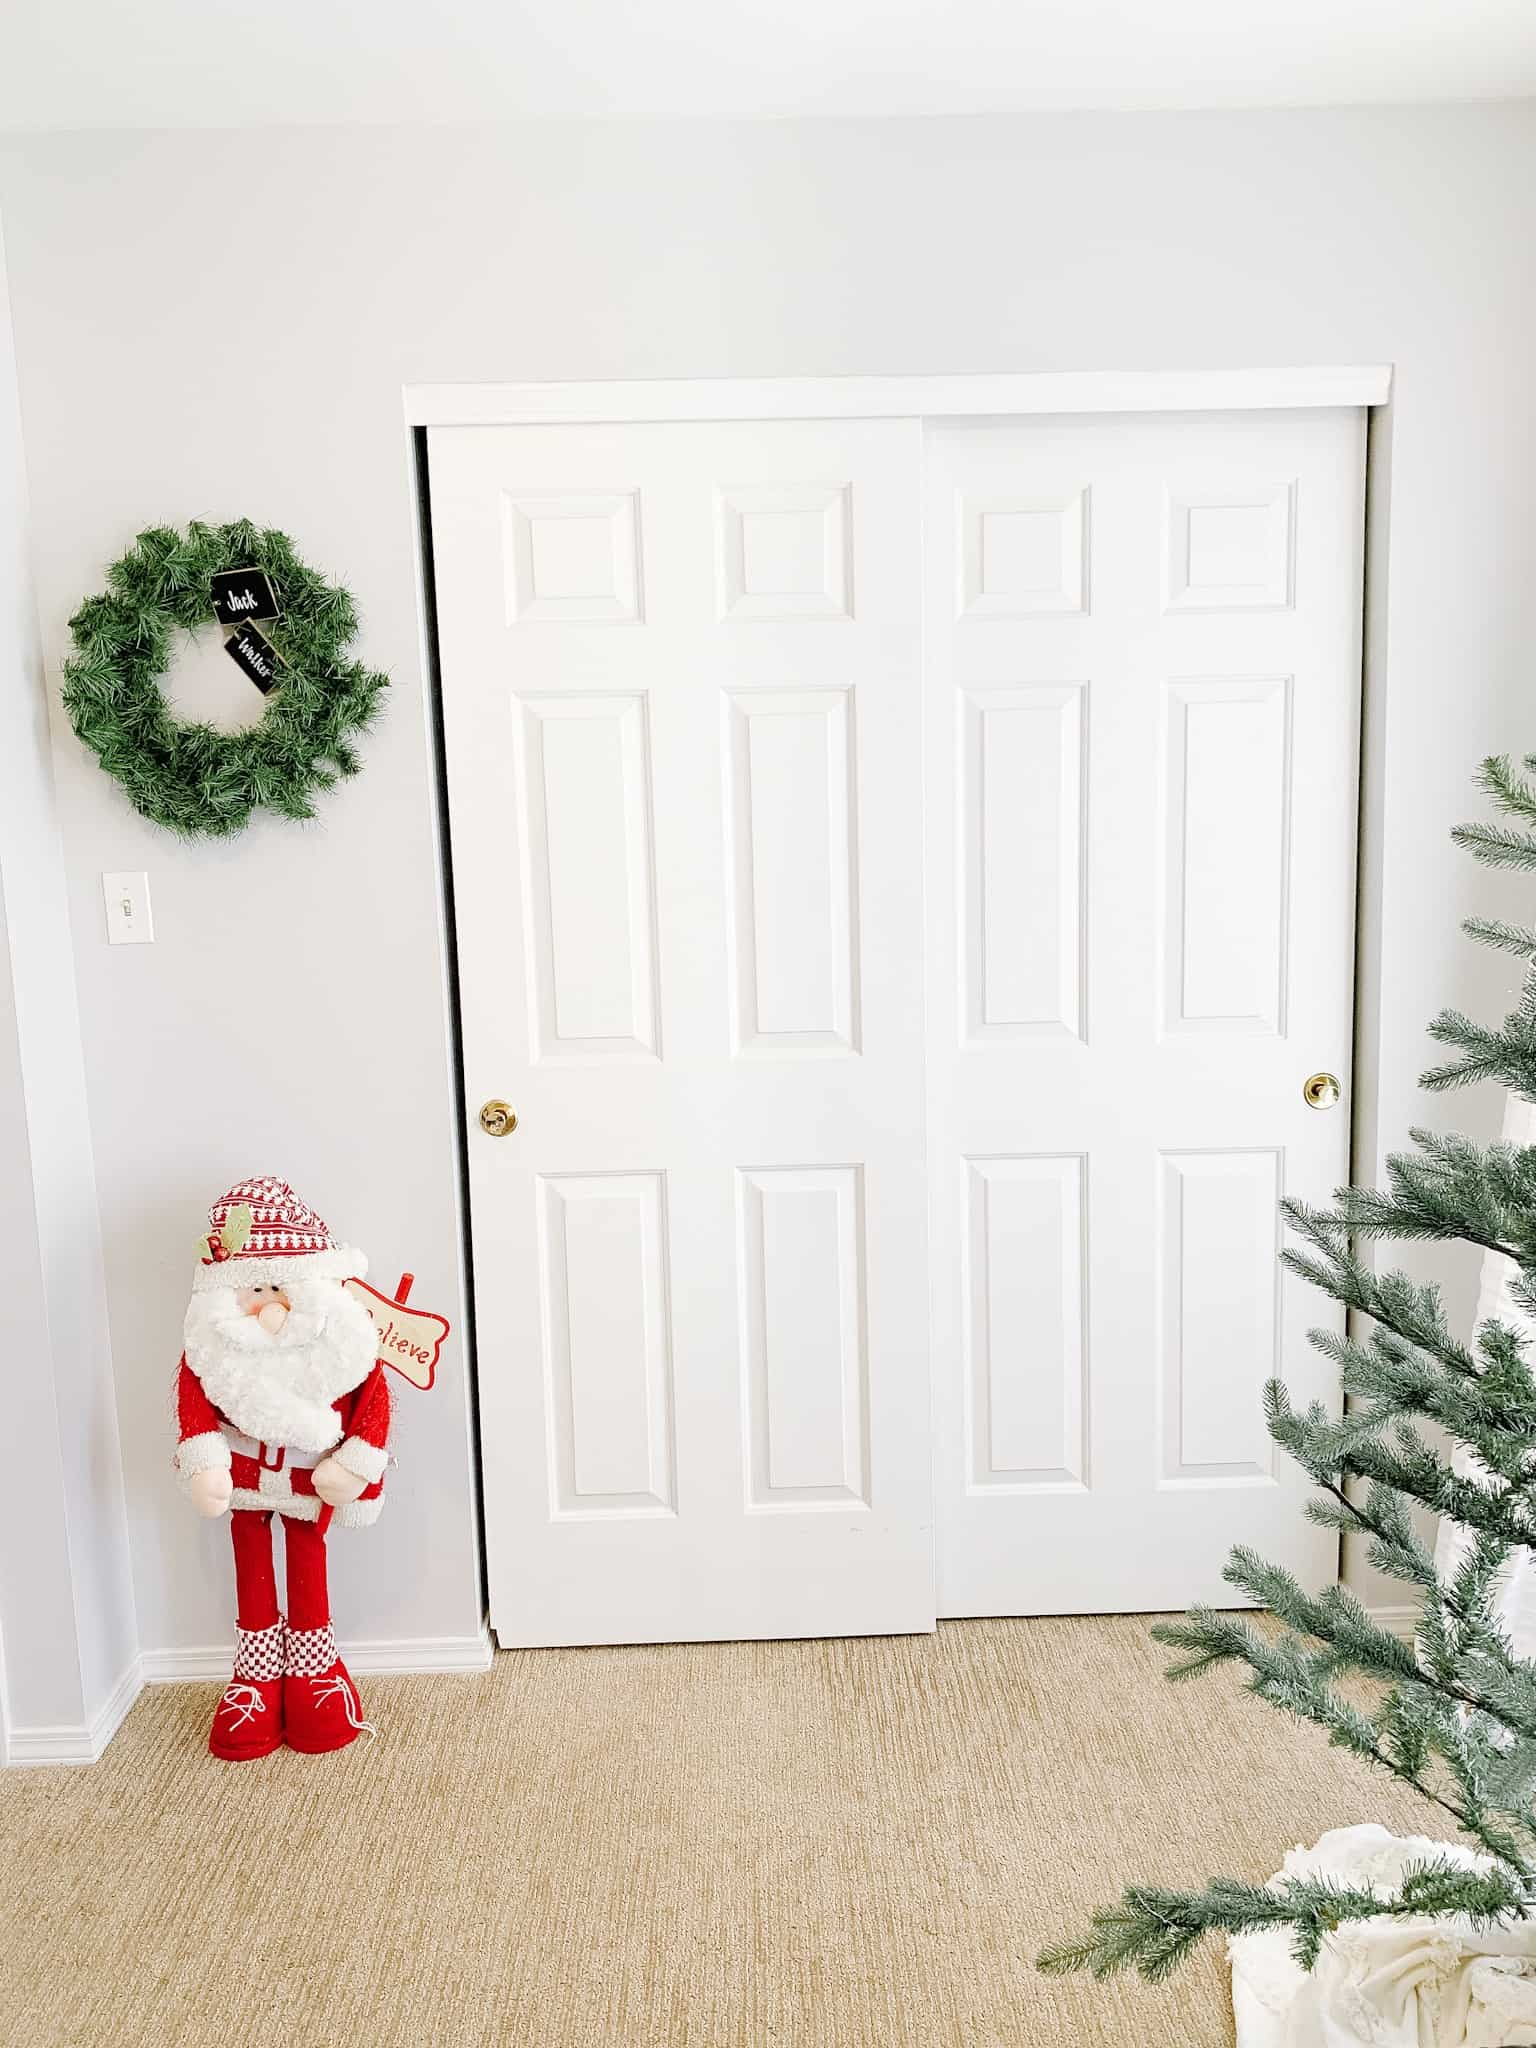 Santa and Wreath in Christmas Boys' Room by closet